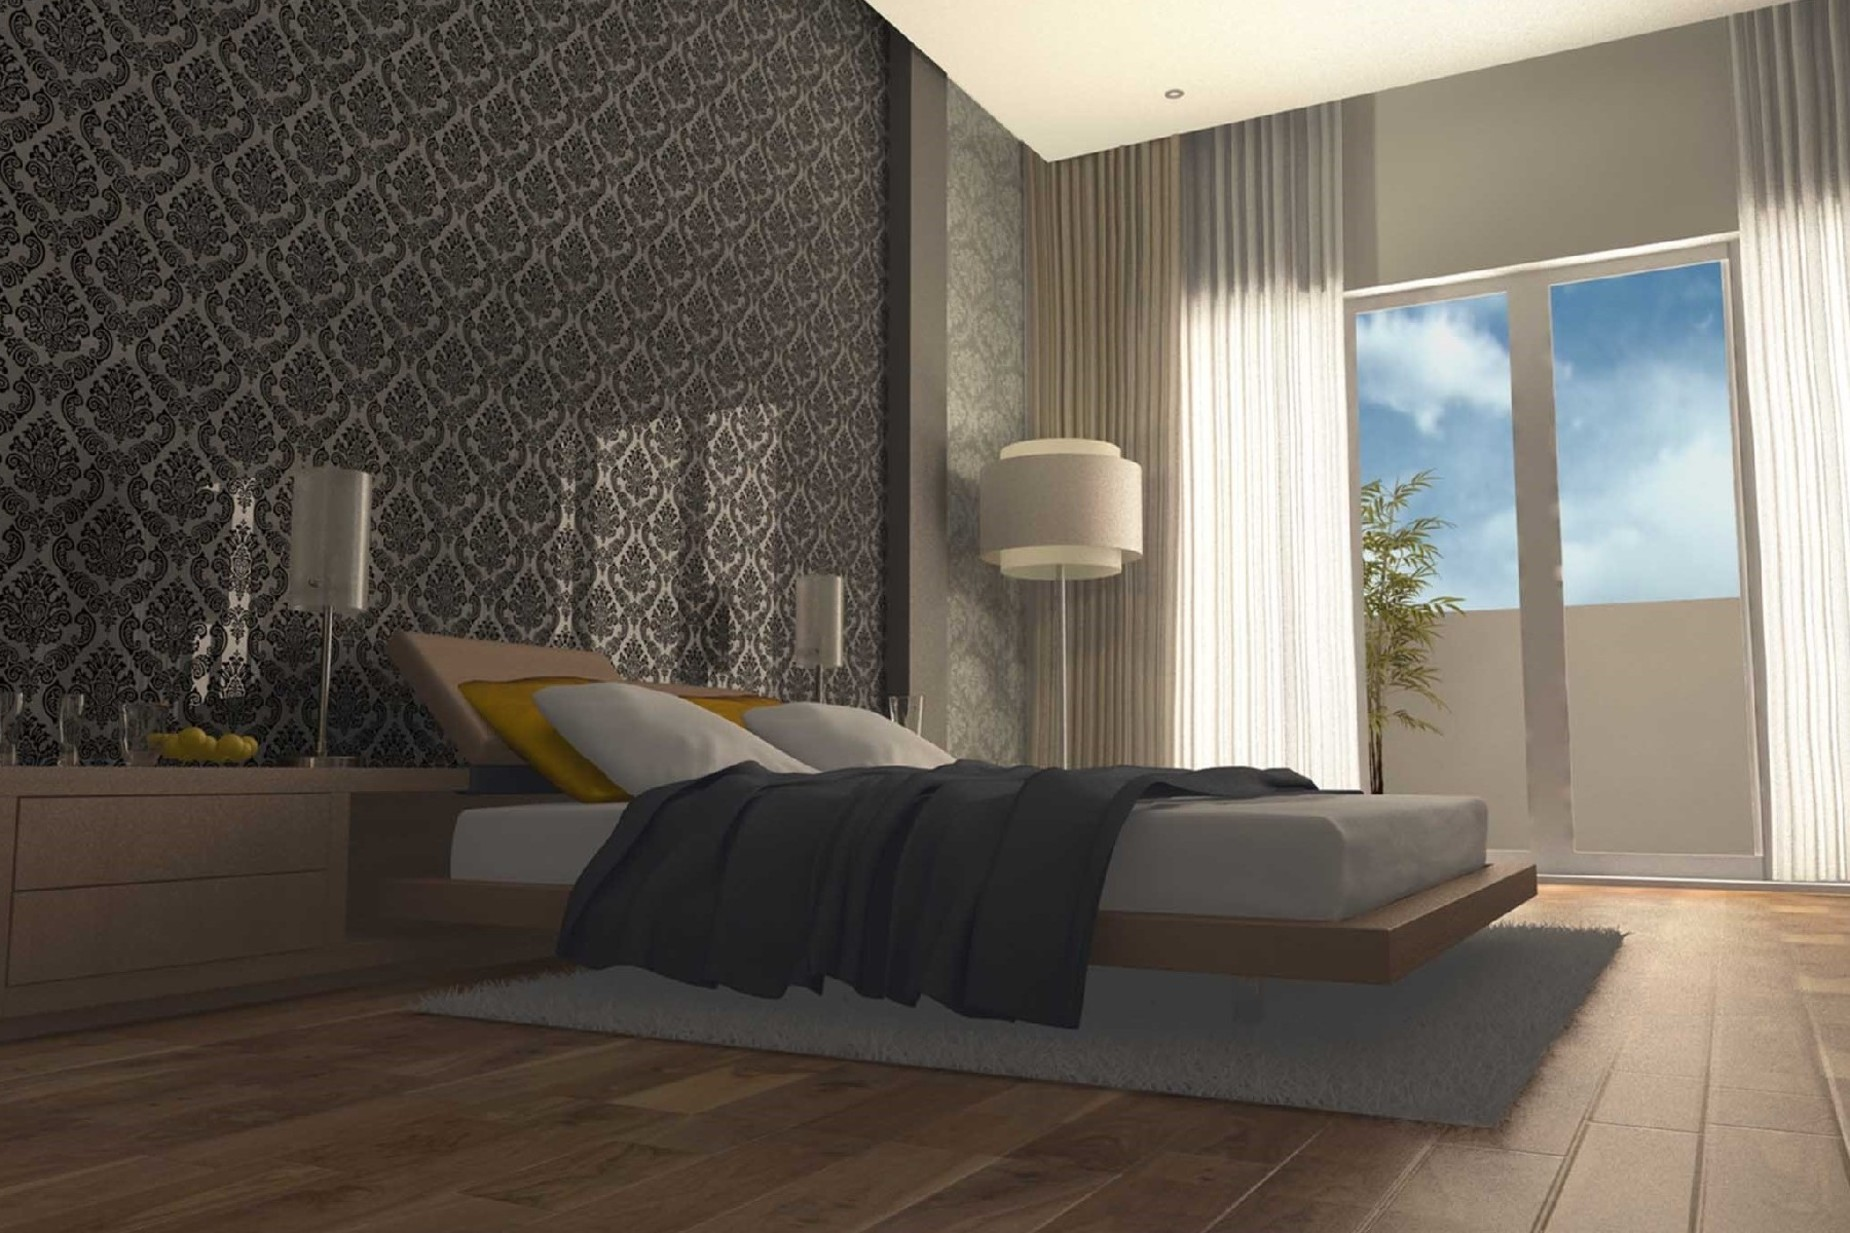 3 bed Apartment For Sale in Mellieha, Mellieha - thumb 22